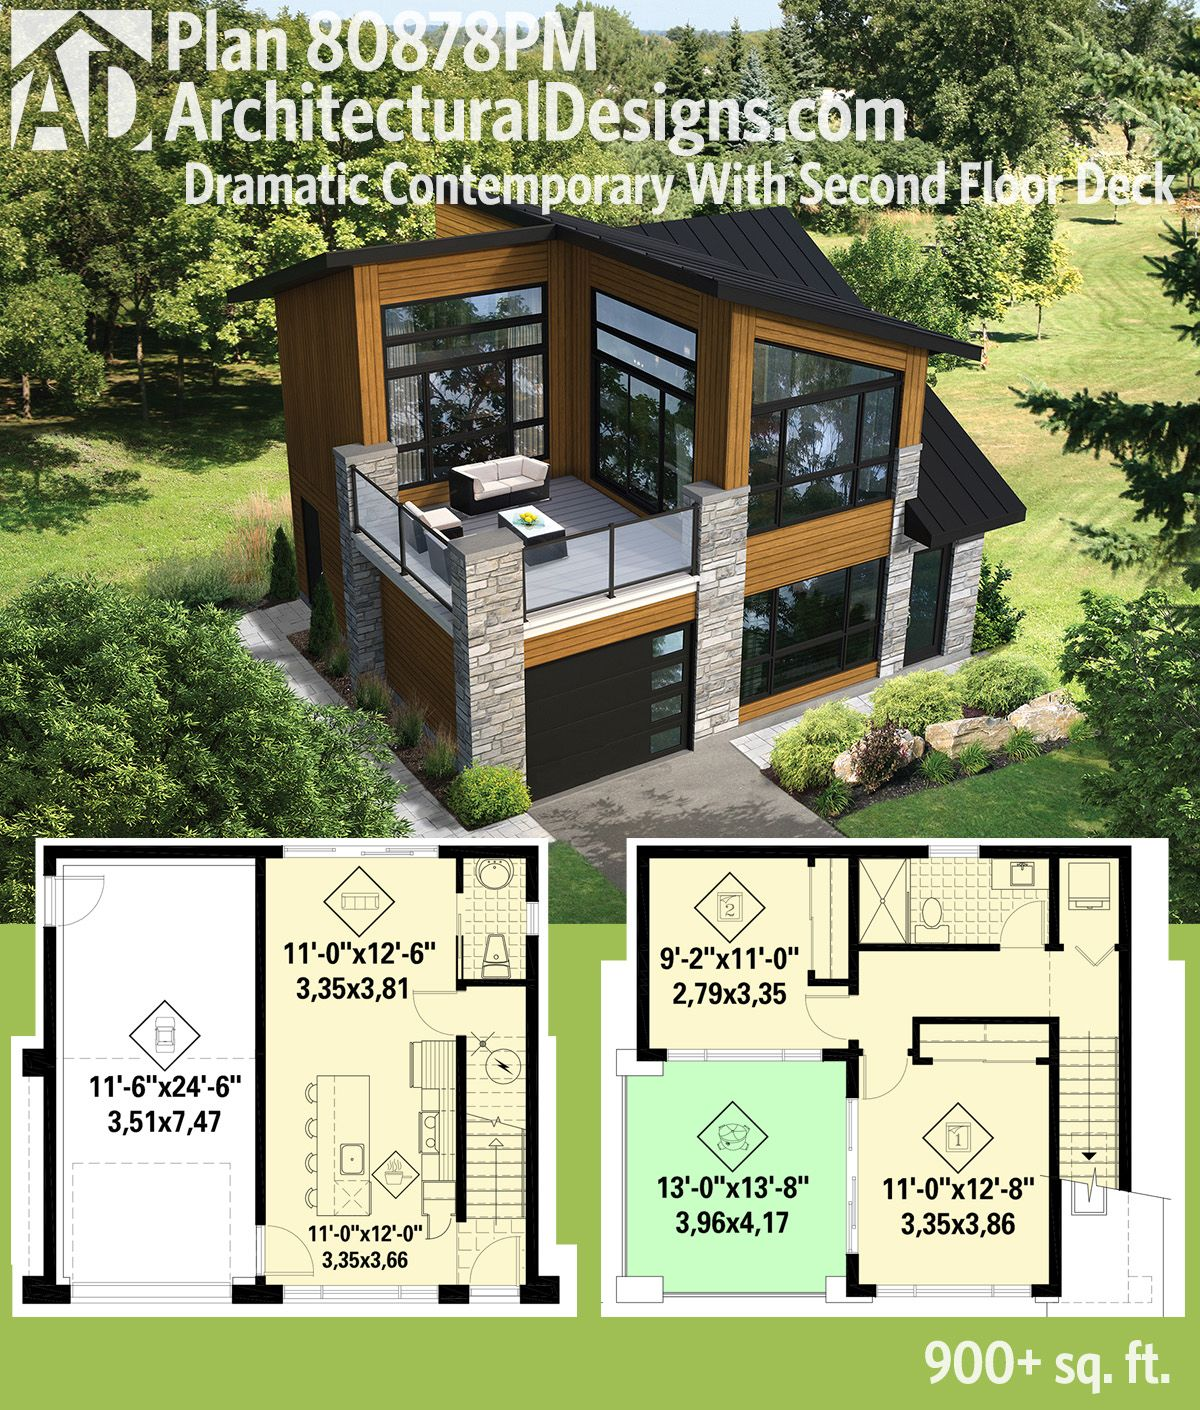 Plan 80878pm dramatic contemporary with second floor deck for Little house blueprints